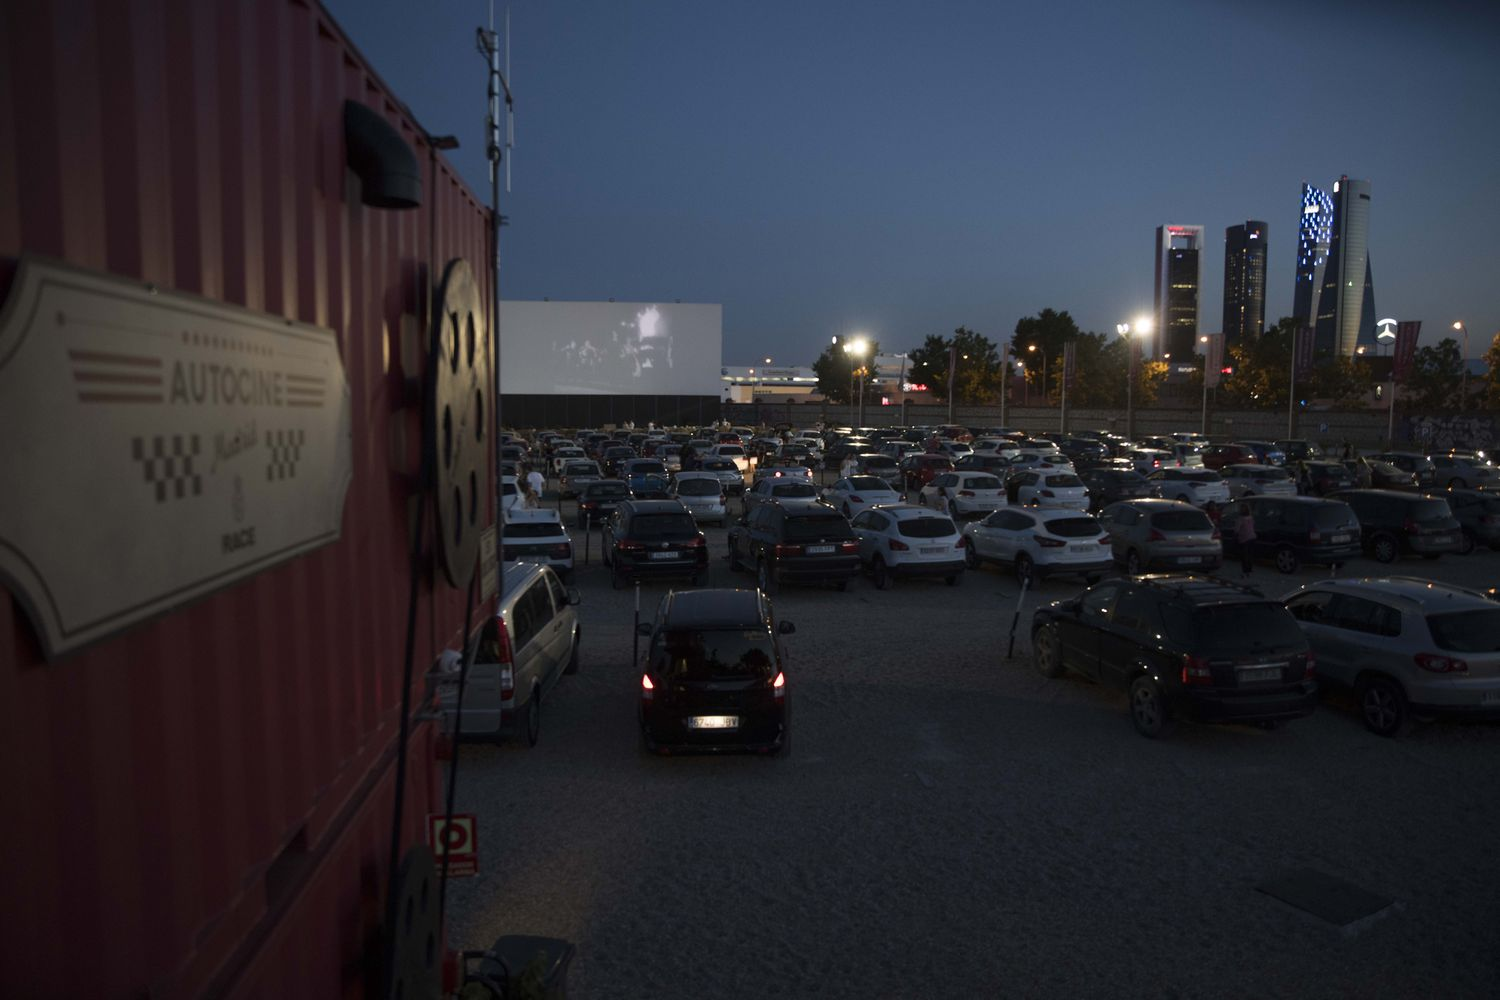 Projection, à l'été 2018, au cinéma Drive-in de Madrid RACE.